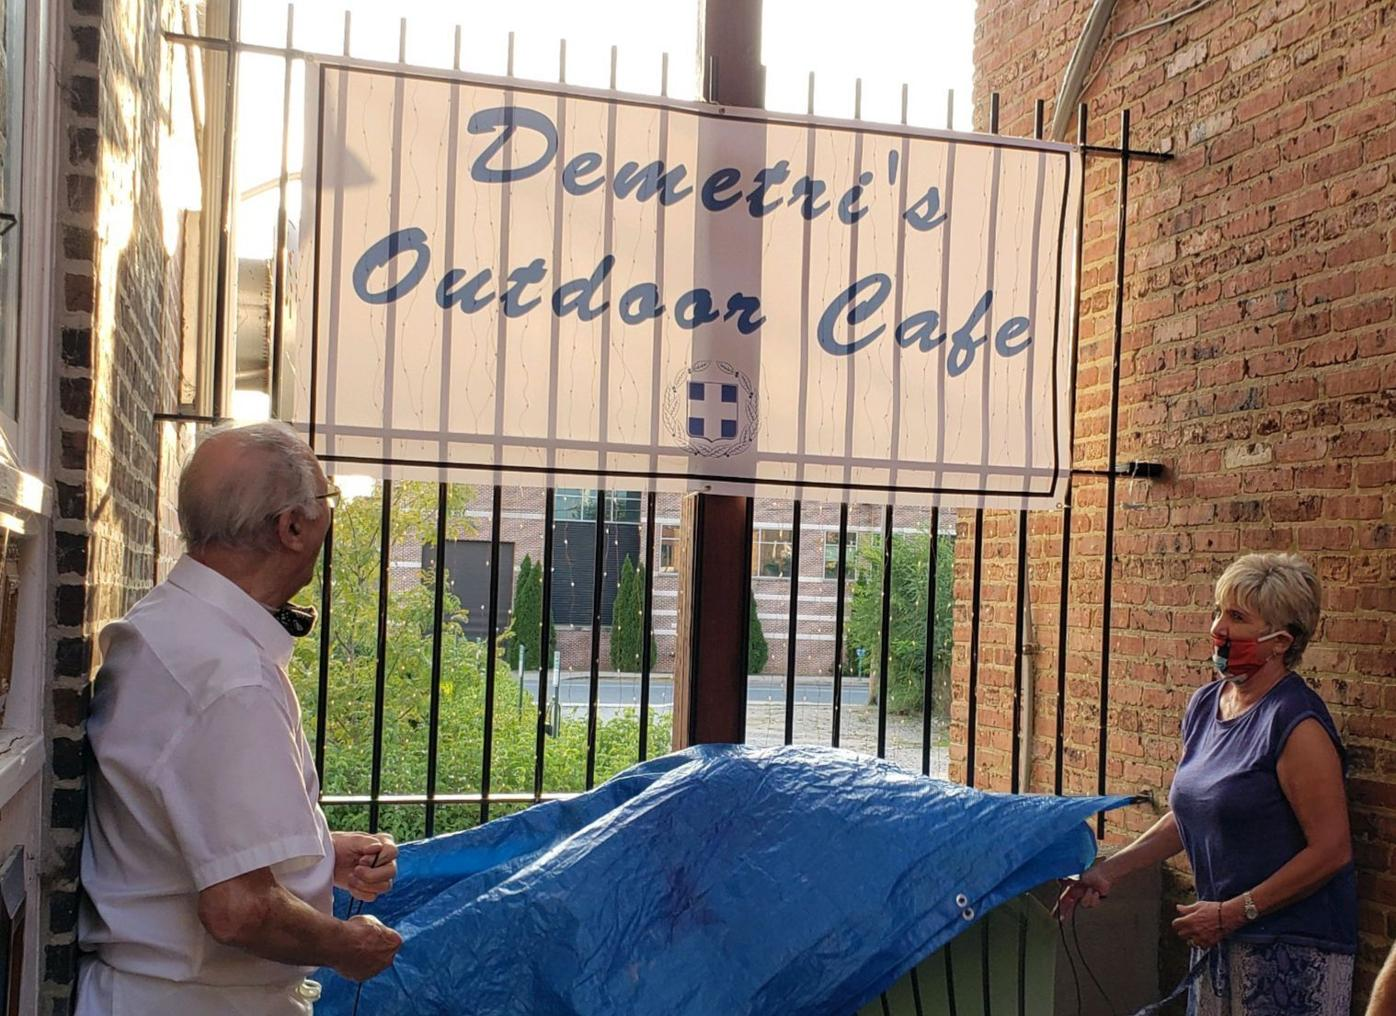 Demetri's Outdoor Cafe opens on North Street in Elkton